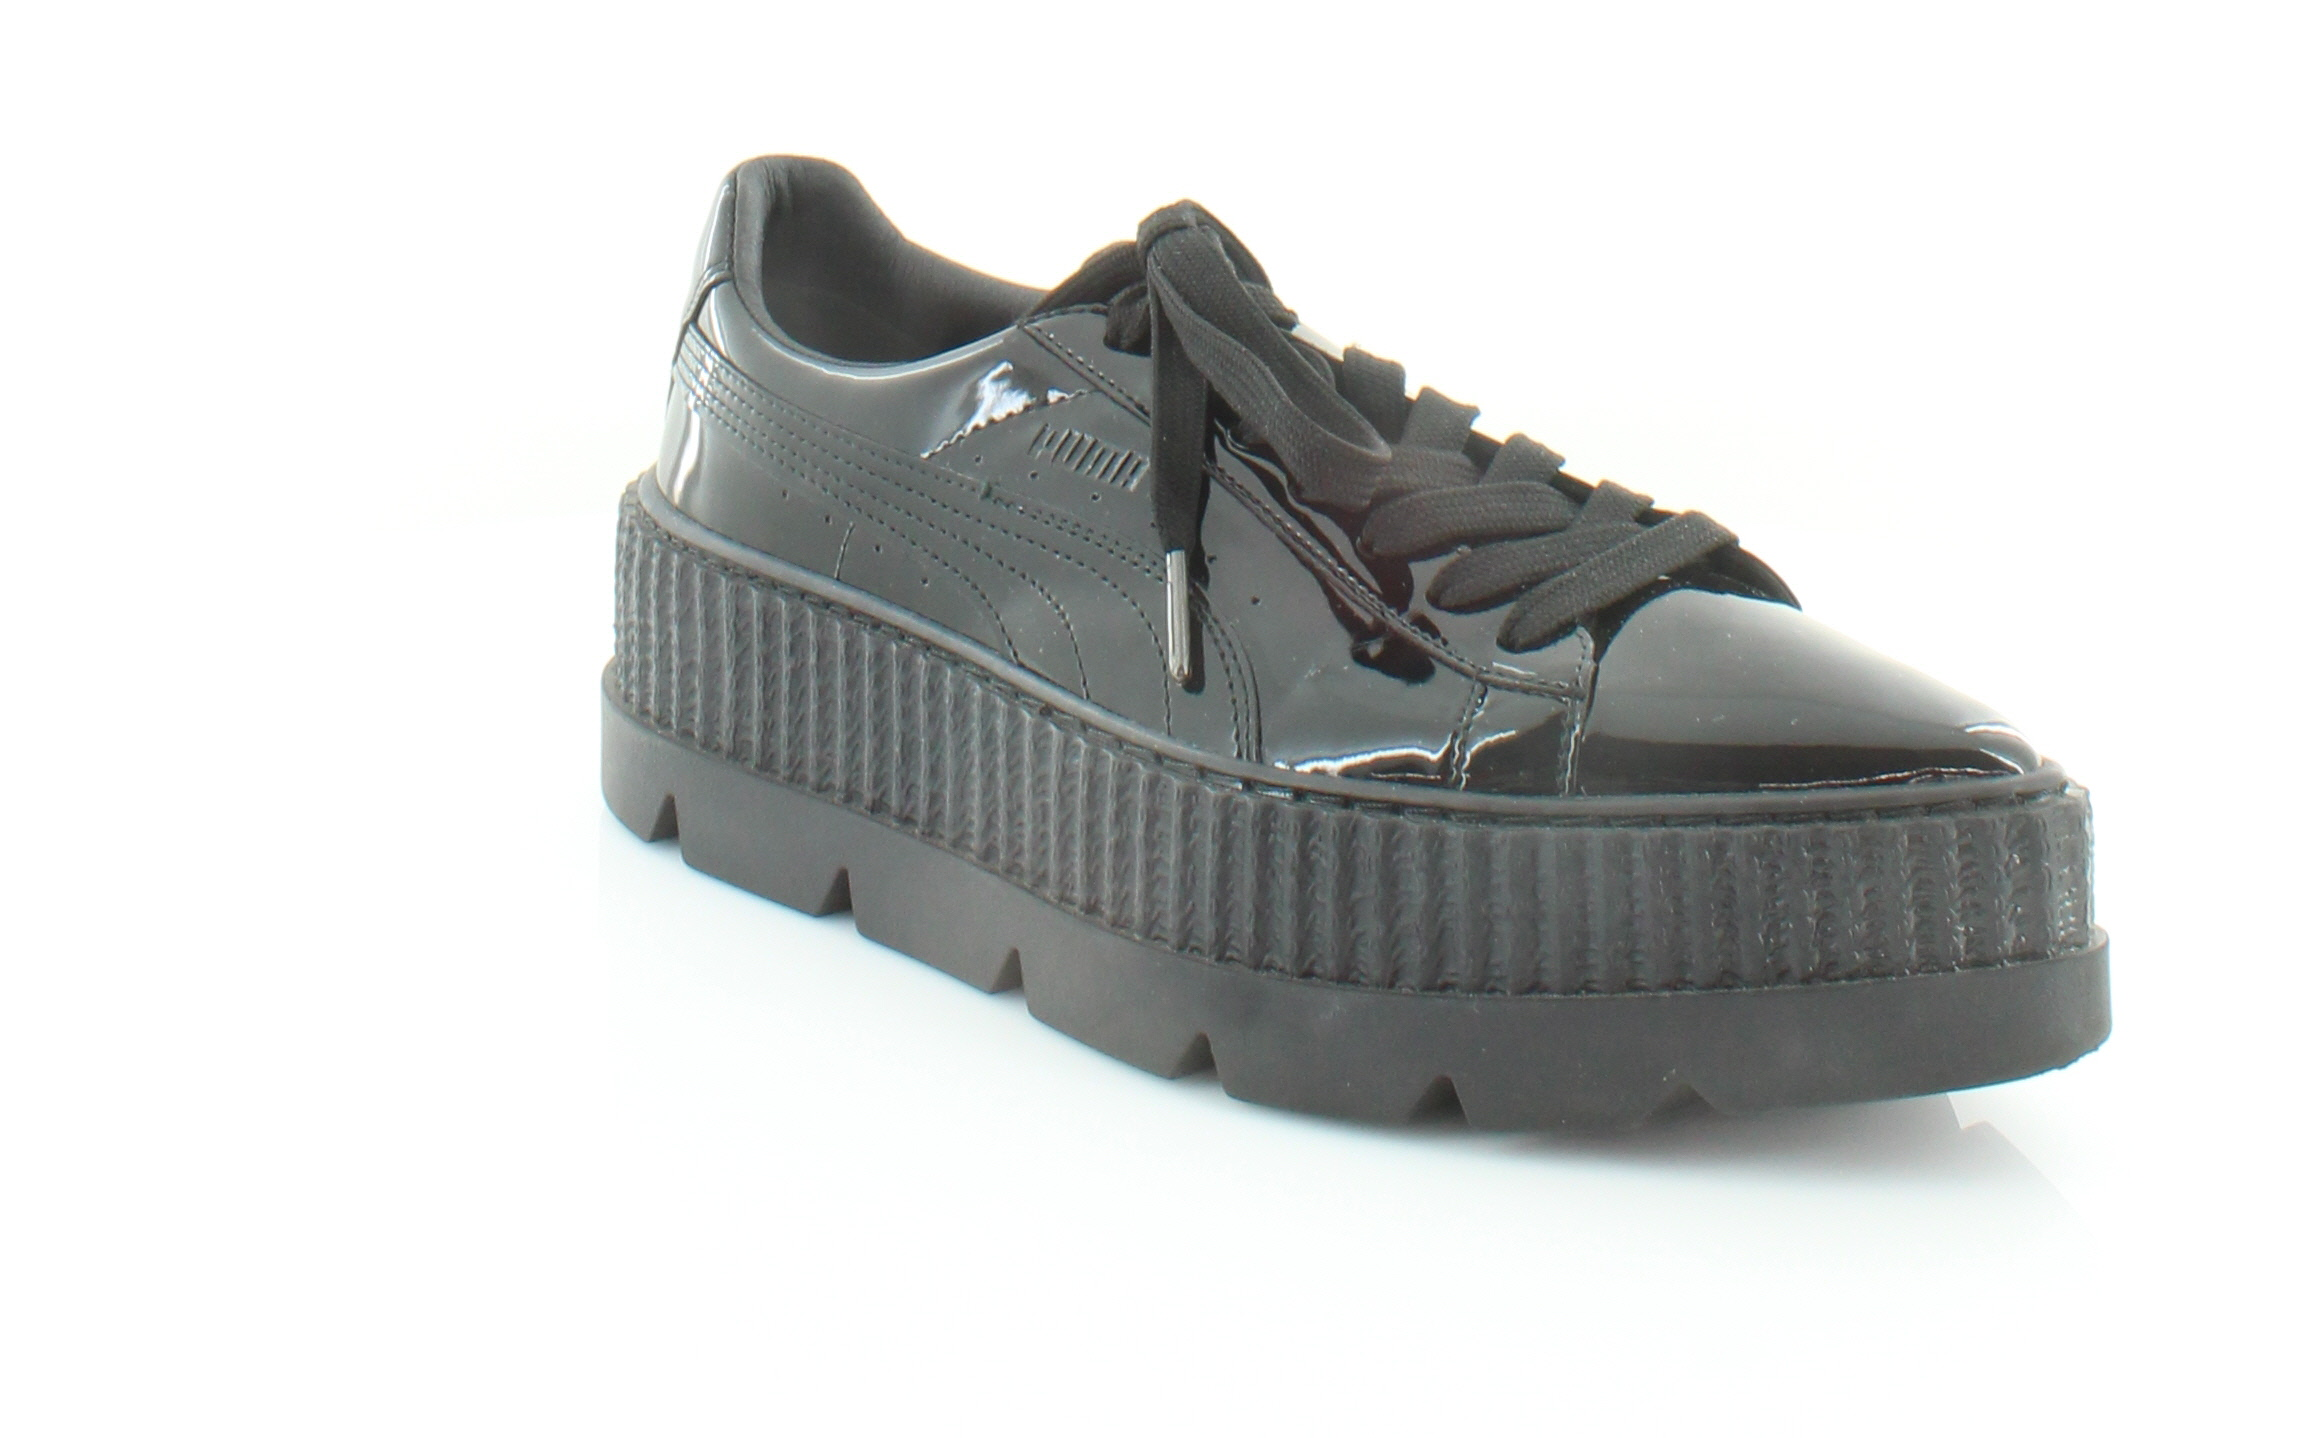 check out 3b121 ac7a1 Details about Fenty Puma x Rihanna Pointy Creeper Black Womens Shoes 9 M  Fashion Sneakers